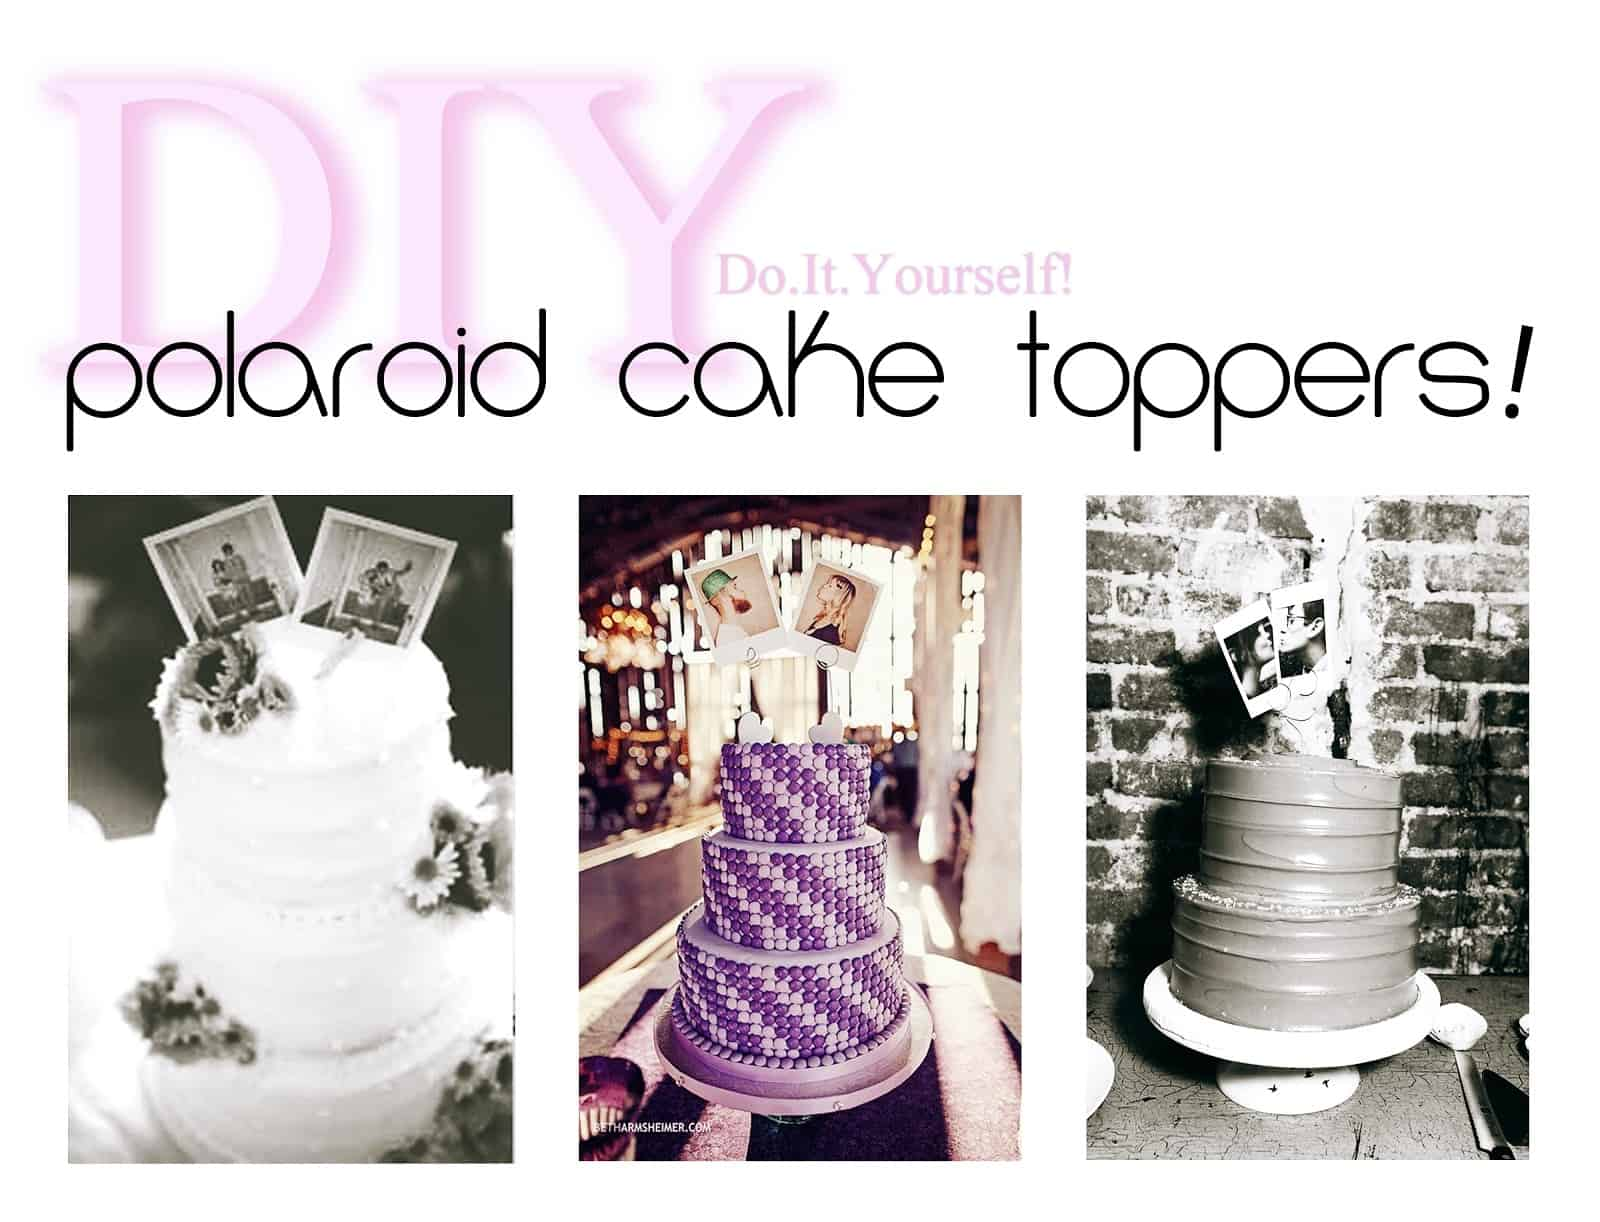 Simply adorable diy wedding cake toppers polaroid and wire cake toppers solutioingenieria Image collections